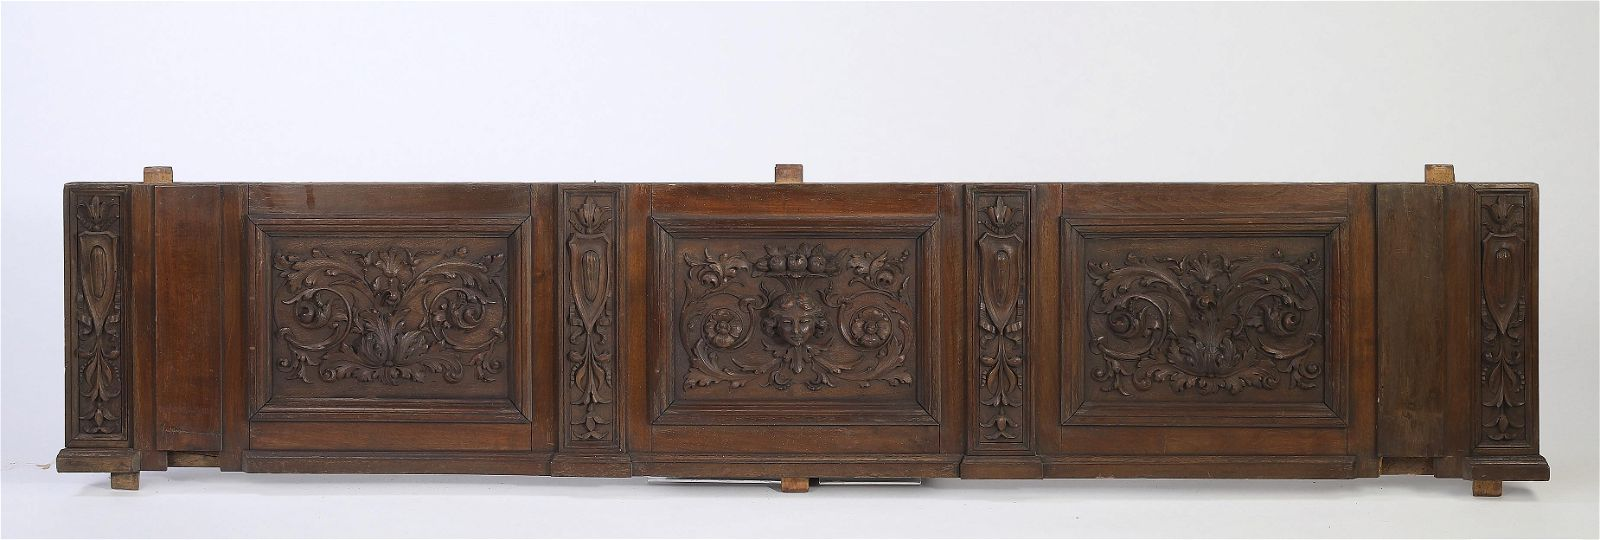 19th c. Italian carved architectural panel